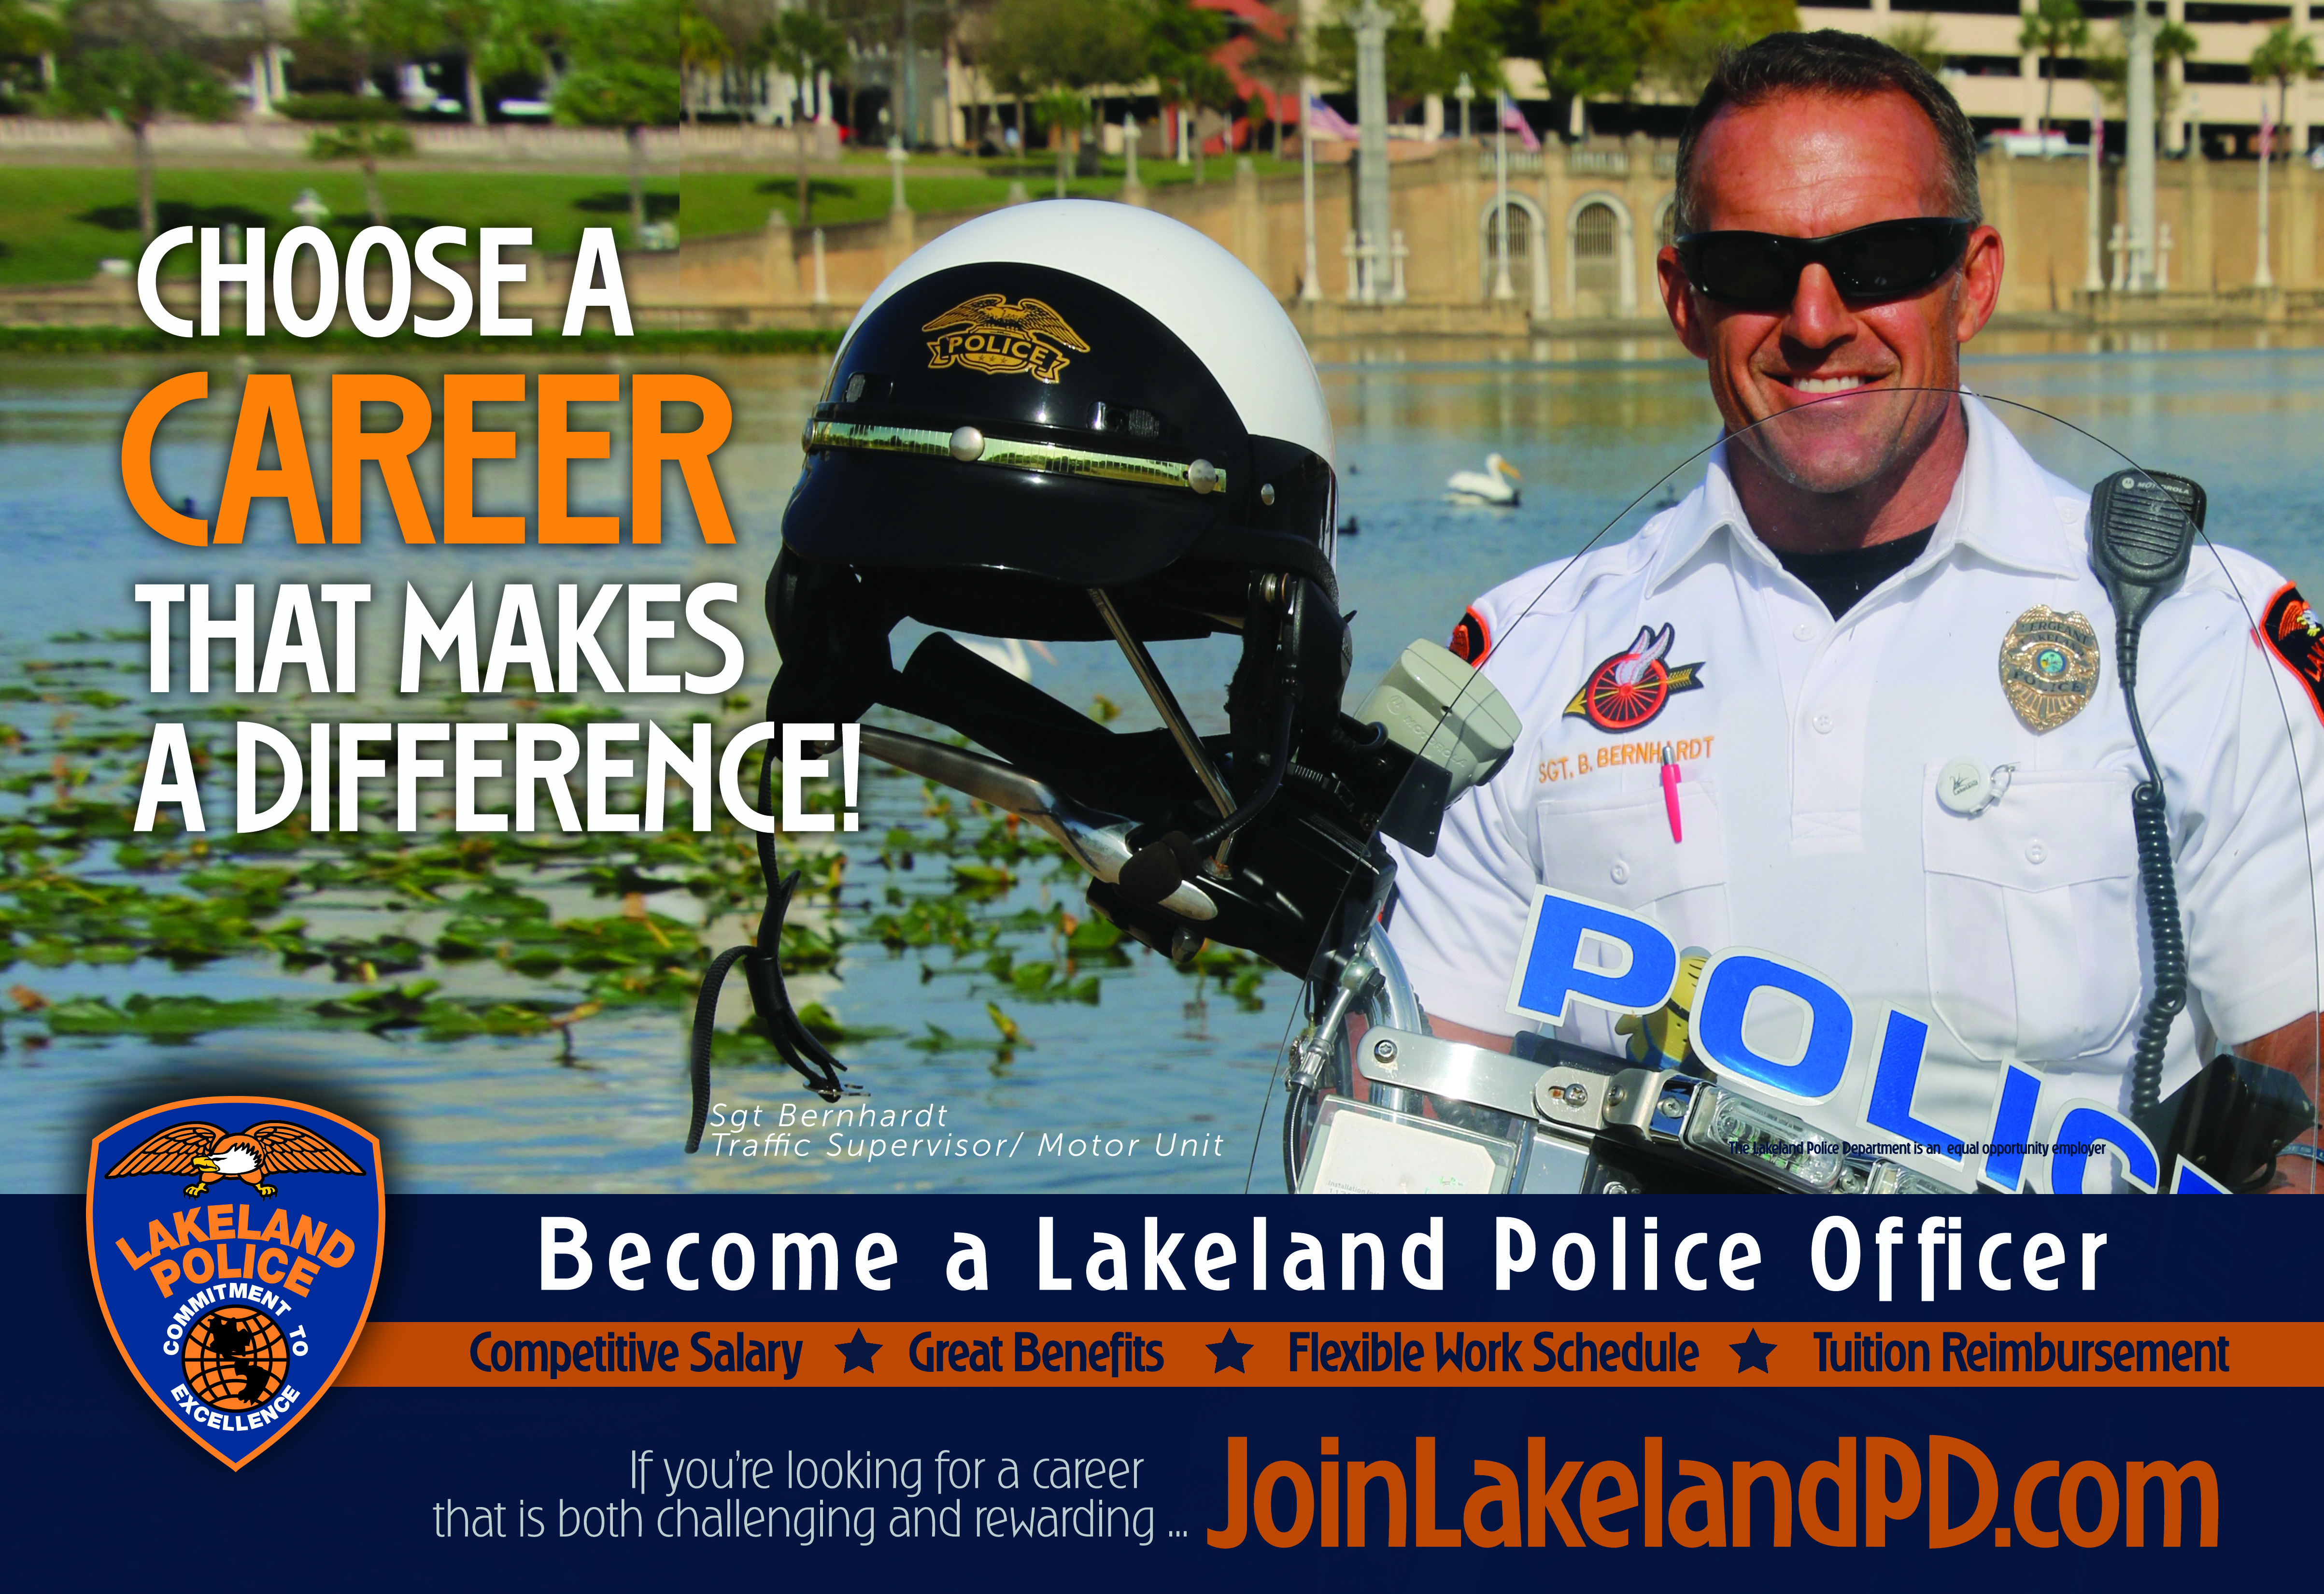 Sgt Berhardt posing on a JoinLakelaPD.com Recruiting flyer